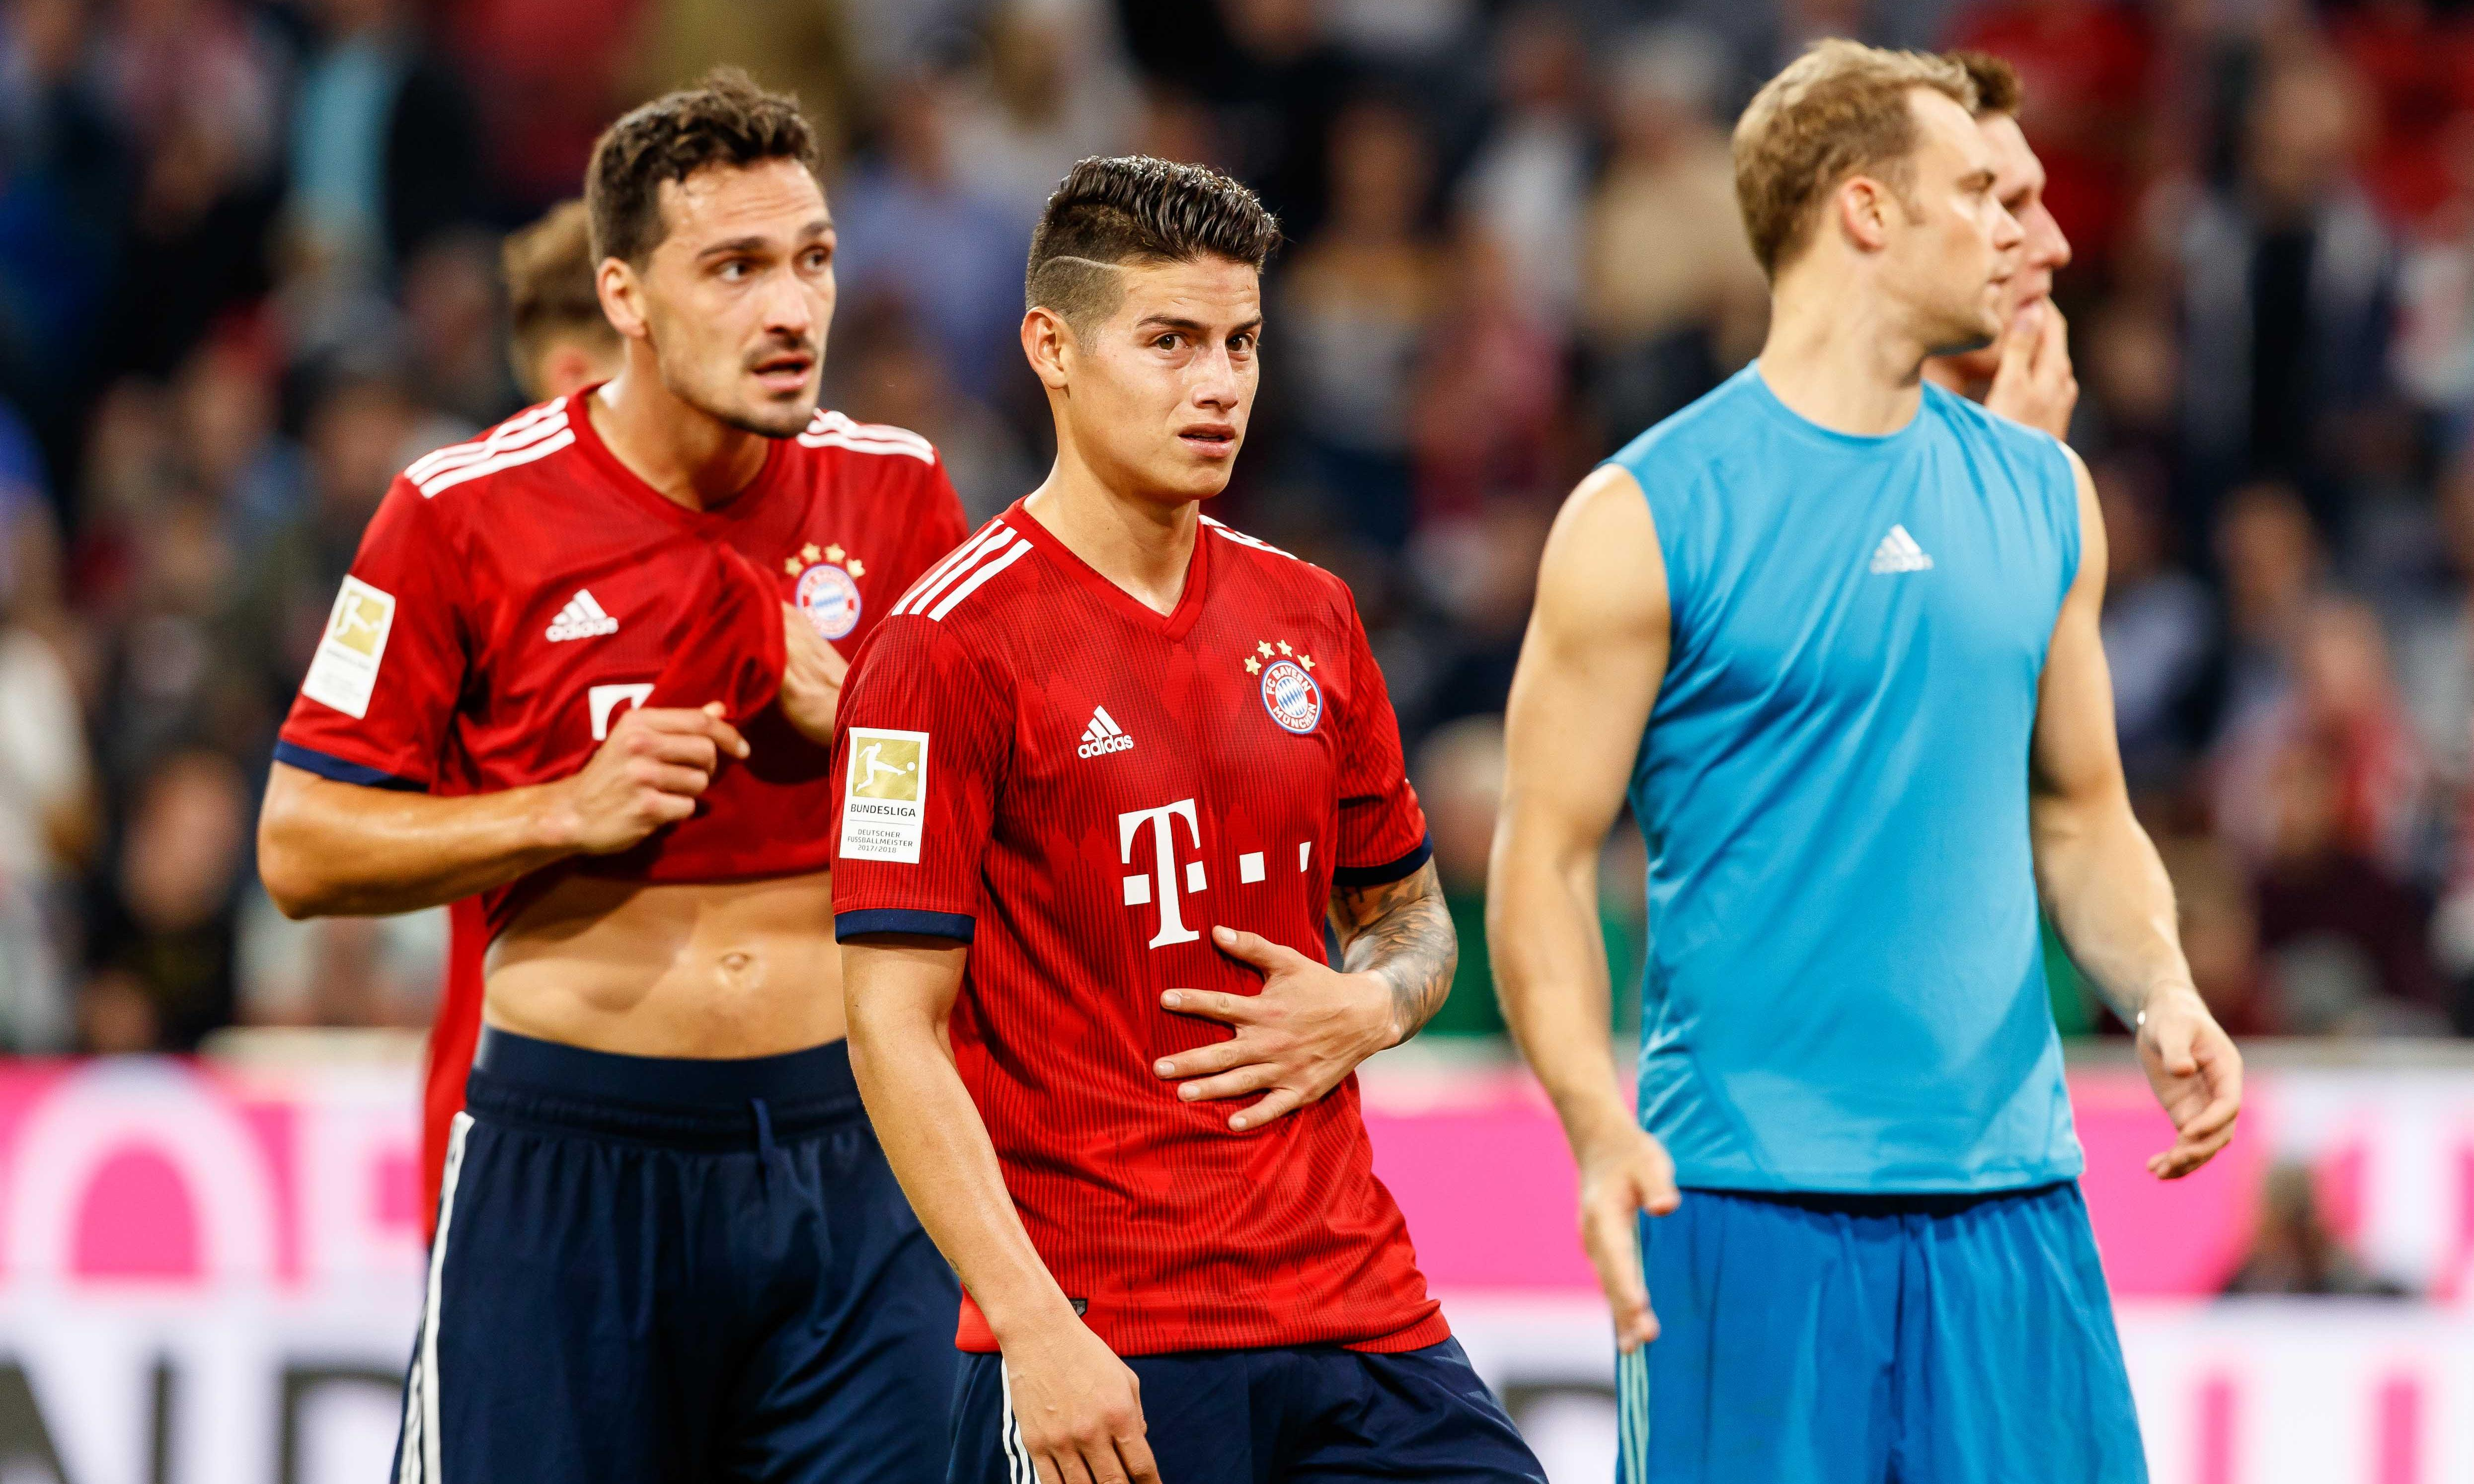 Too old and porous? Bayern Munich face Liverpool amid serious doubts